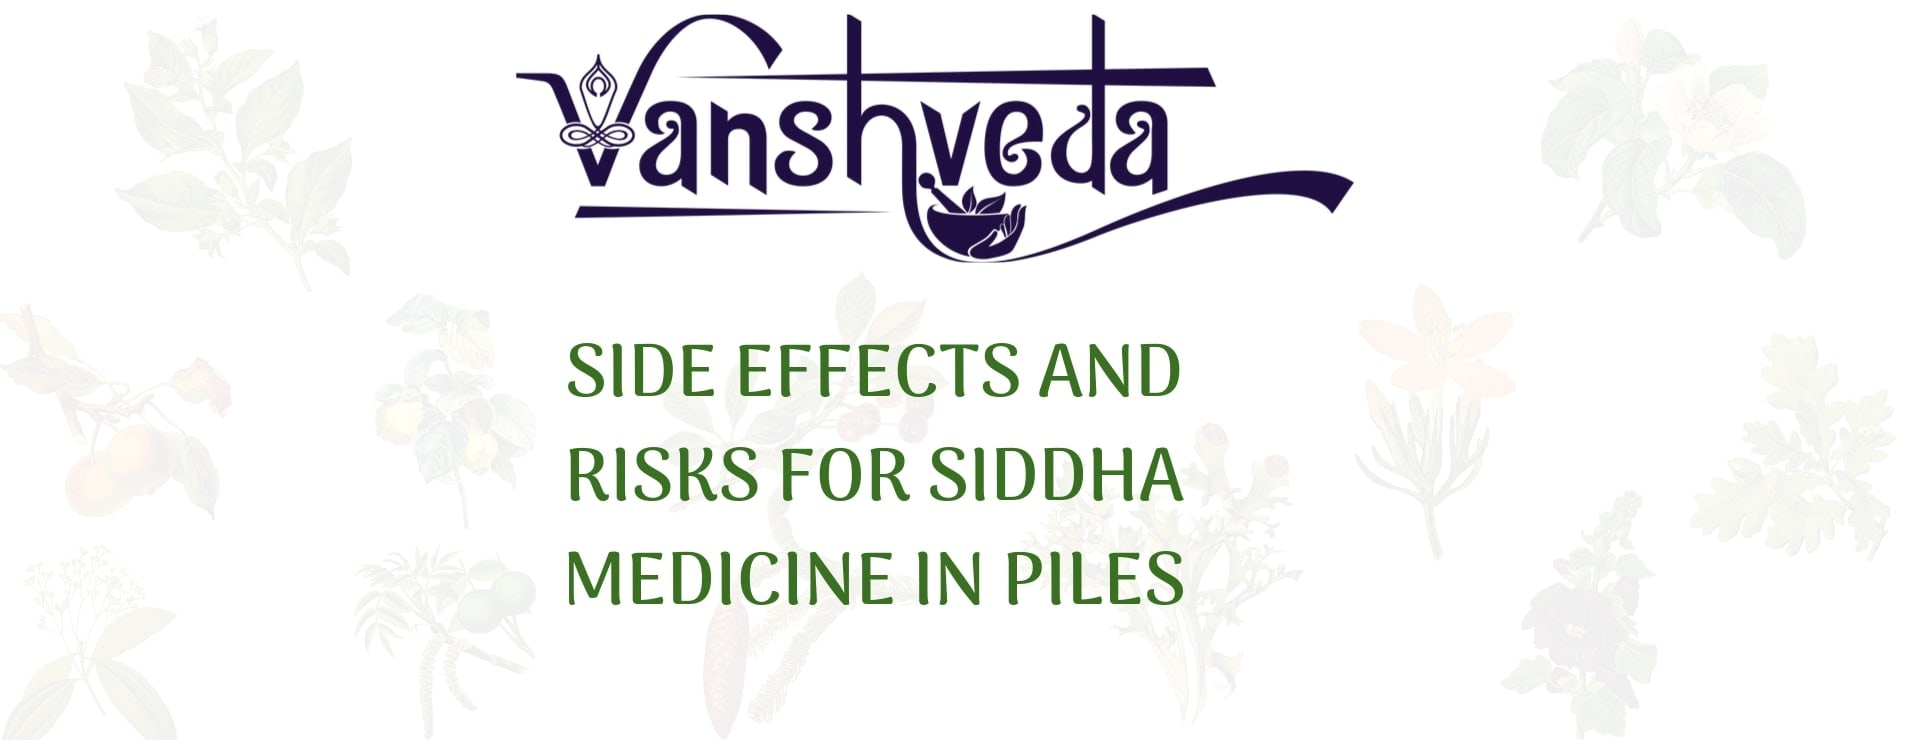 Side Effects And Risks For Siddha Medicine In Piles